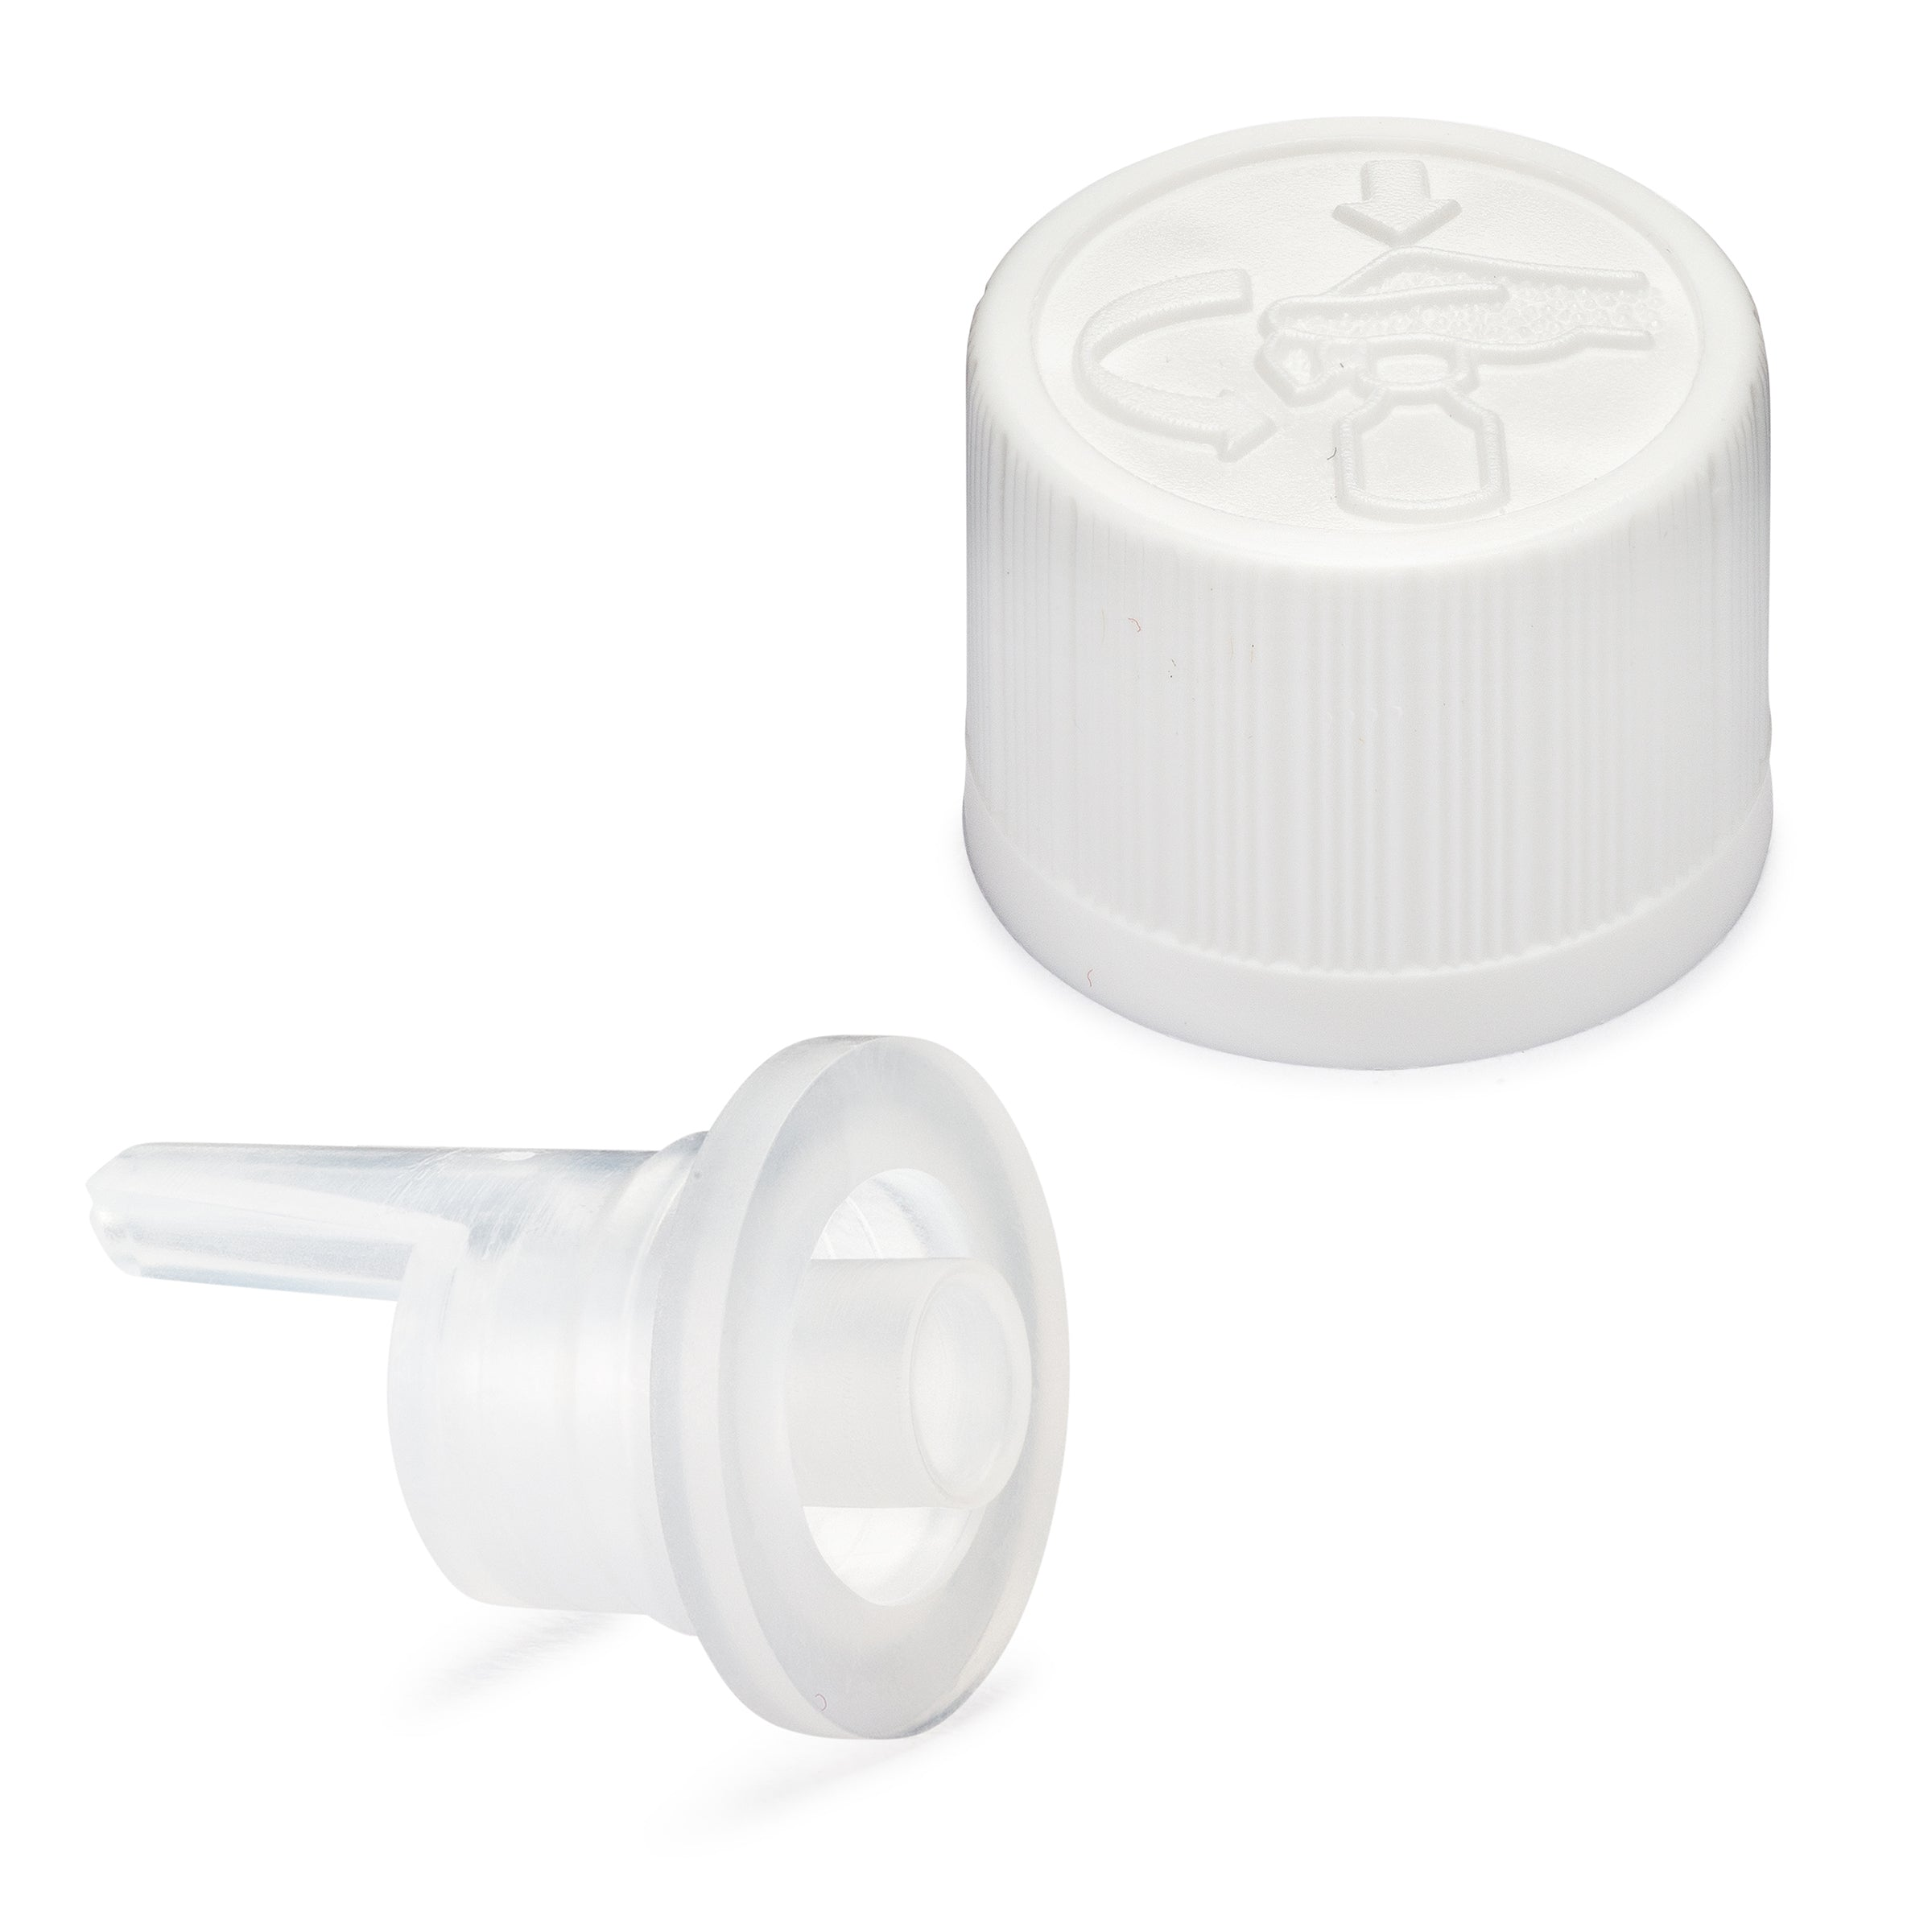 Child Resistant EuroDrop Cap assembled to 1.00mm Vertical Dropper Insert